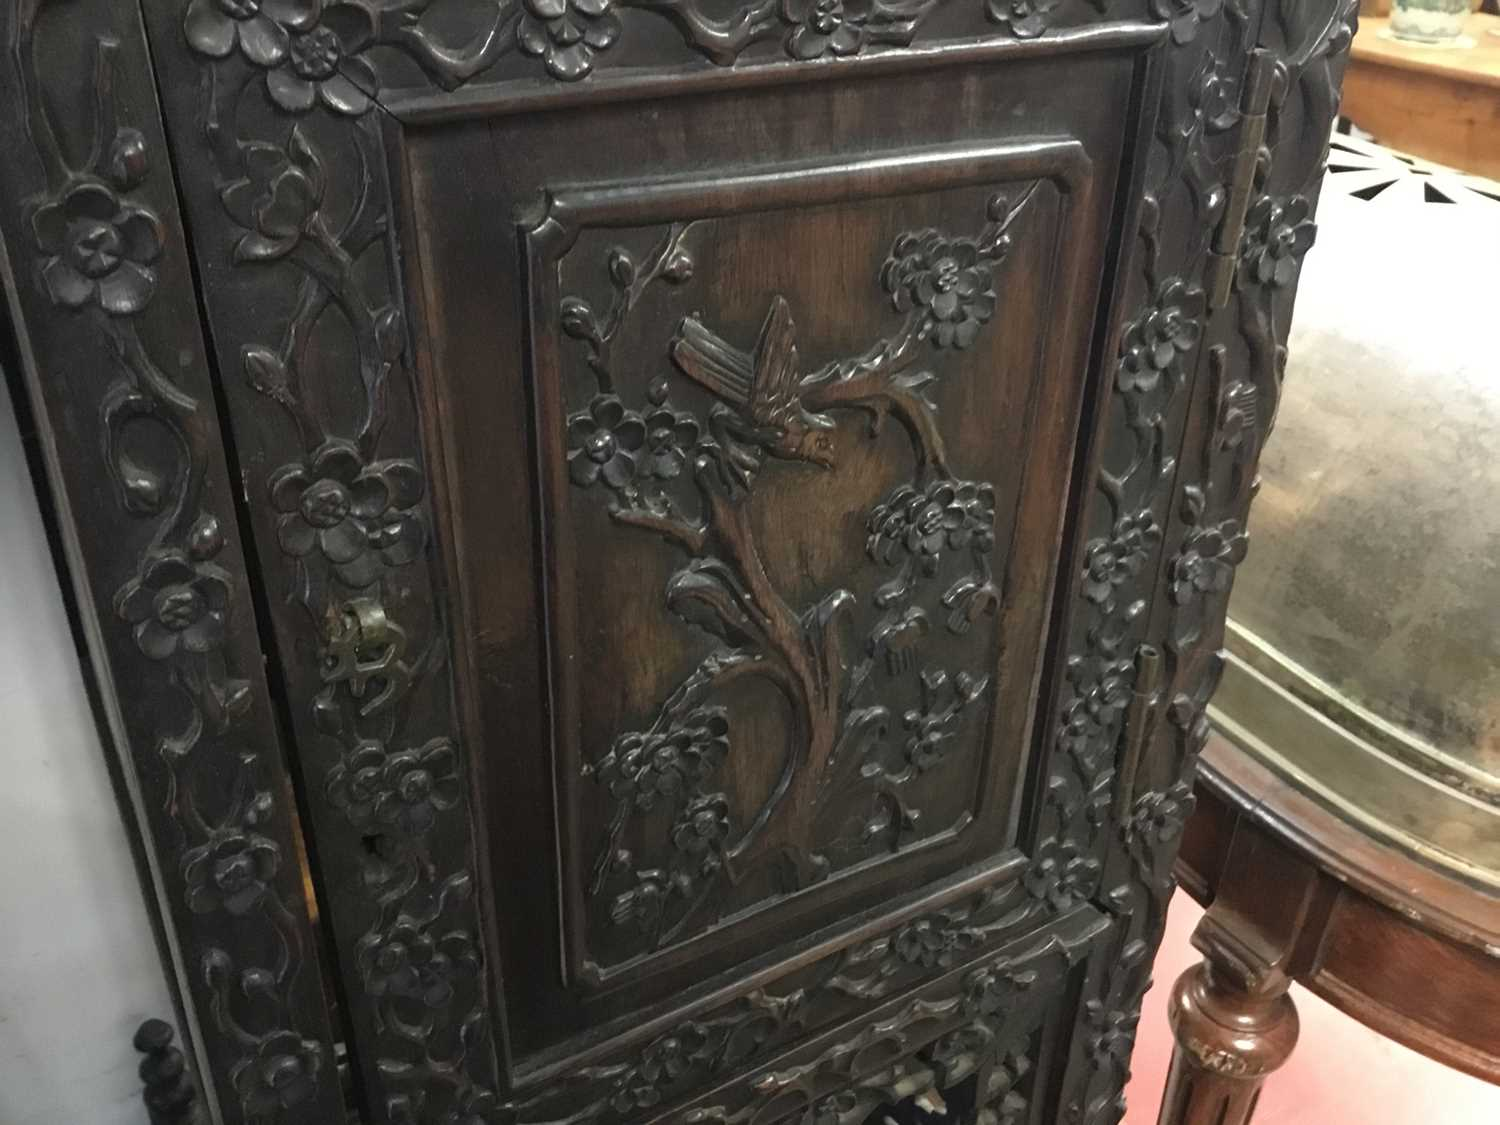 Late 19th century Chinese carved rosewood display cabinet - Image 11 of 13